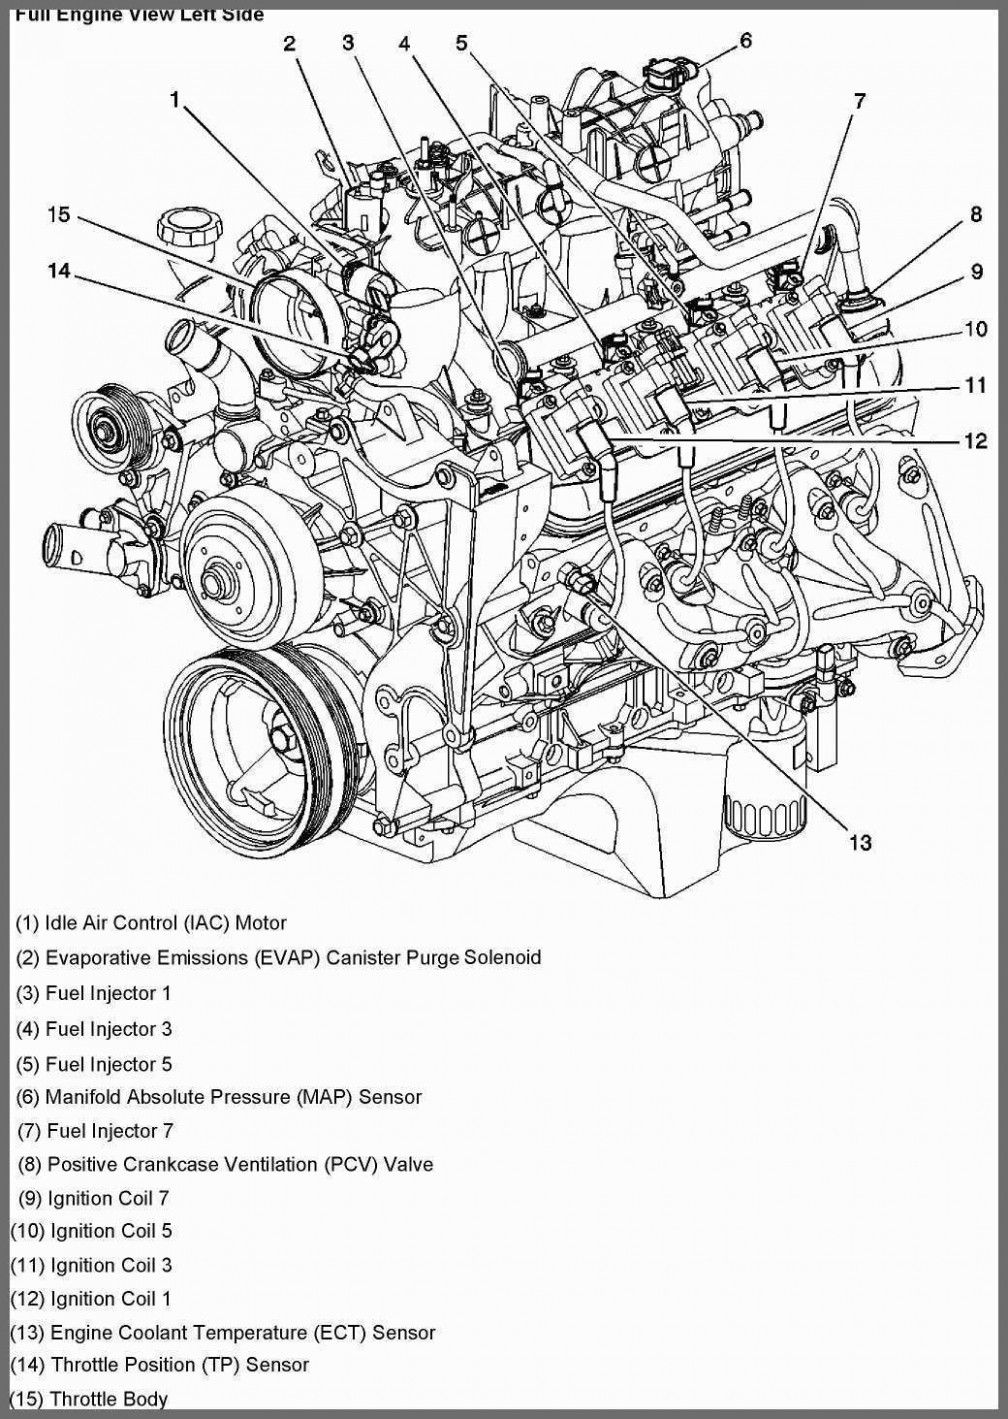 7.7 Vortec Engine Diagram Download Gratis | Truck engine, Chevy trucks,  1984 chevy truck | 1998 Chevy Cheyenne V6 Vortec Engine Diagram |  | Pinterest